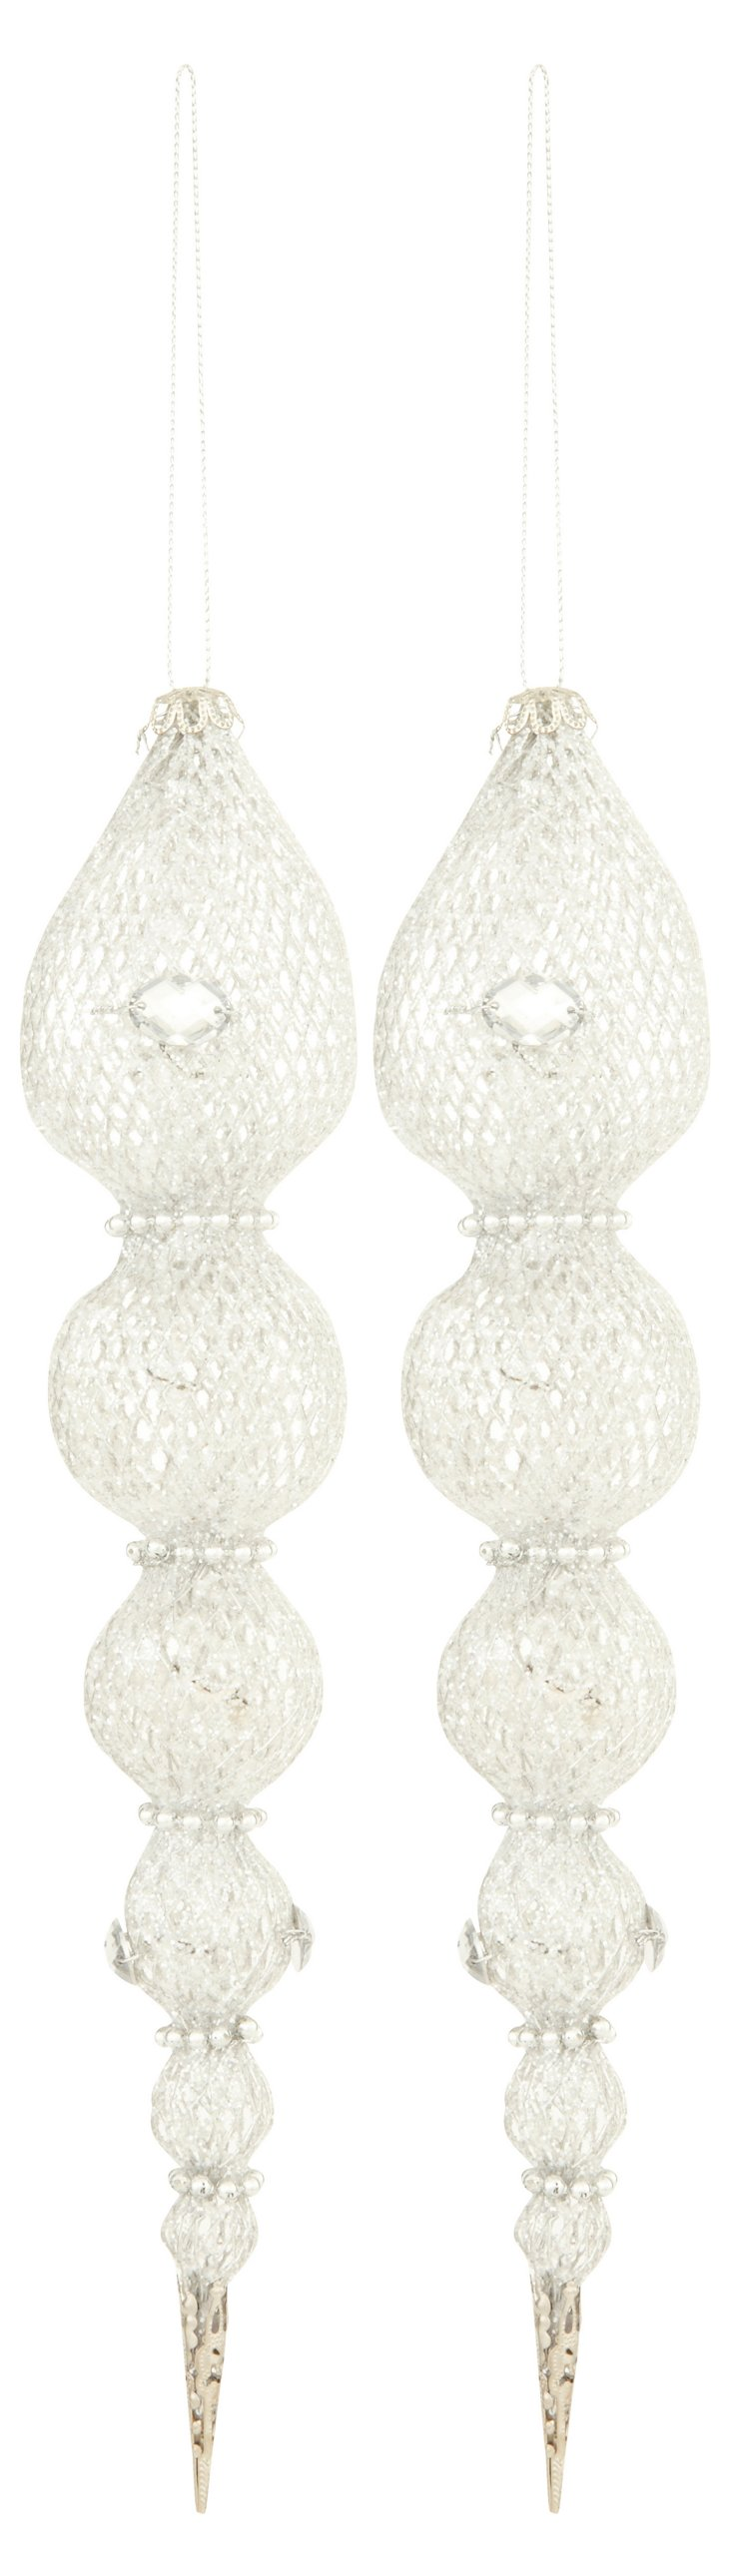 S/2 Long Mesh Ornaments, Silver